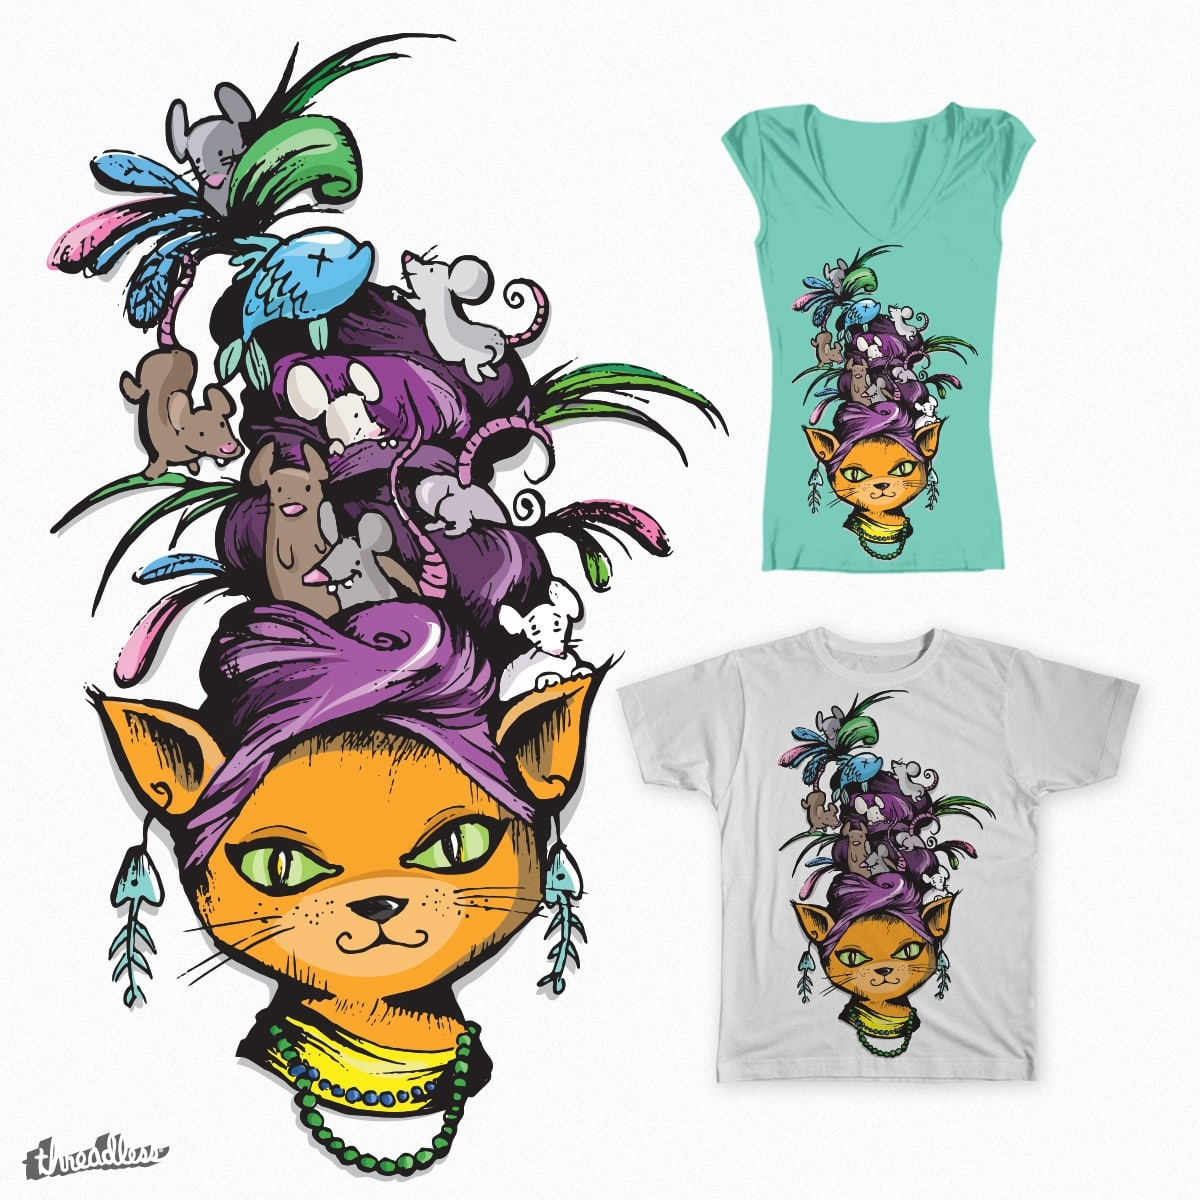 Carmen Meowranda by theinkedmink on Threadless